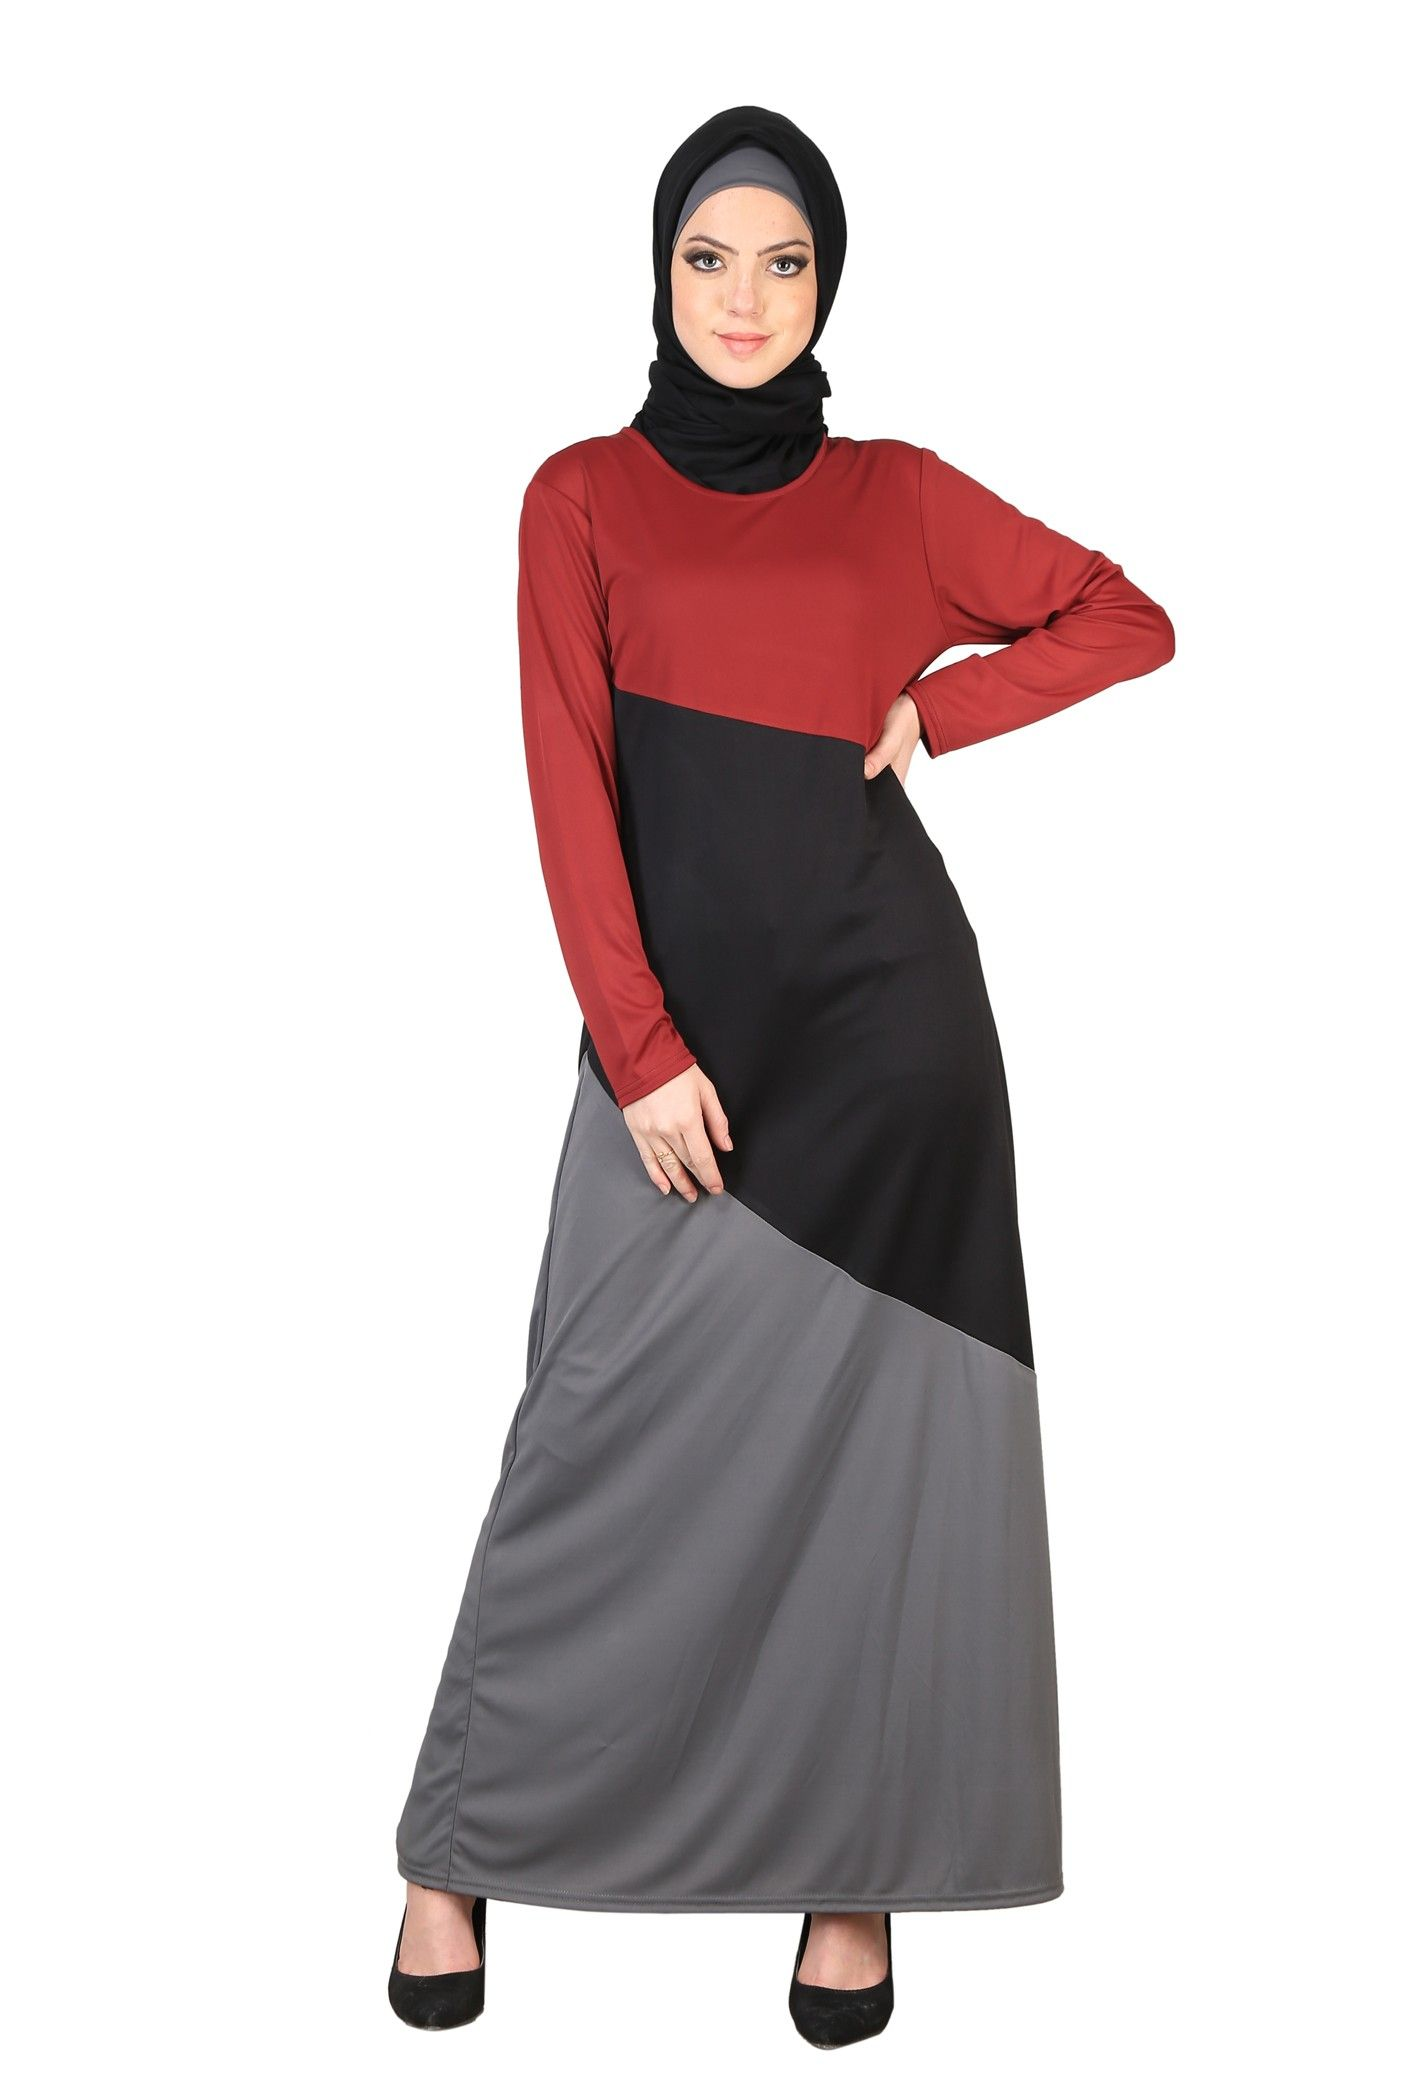 d21153ecc2c Tri-Color Women s Knit Abaya